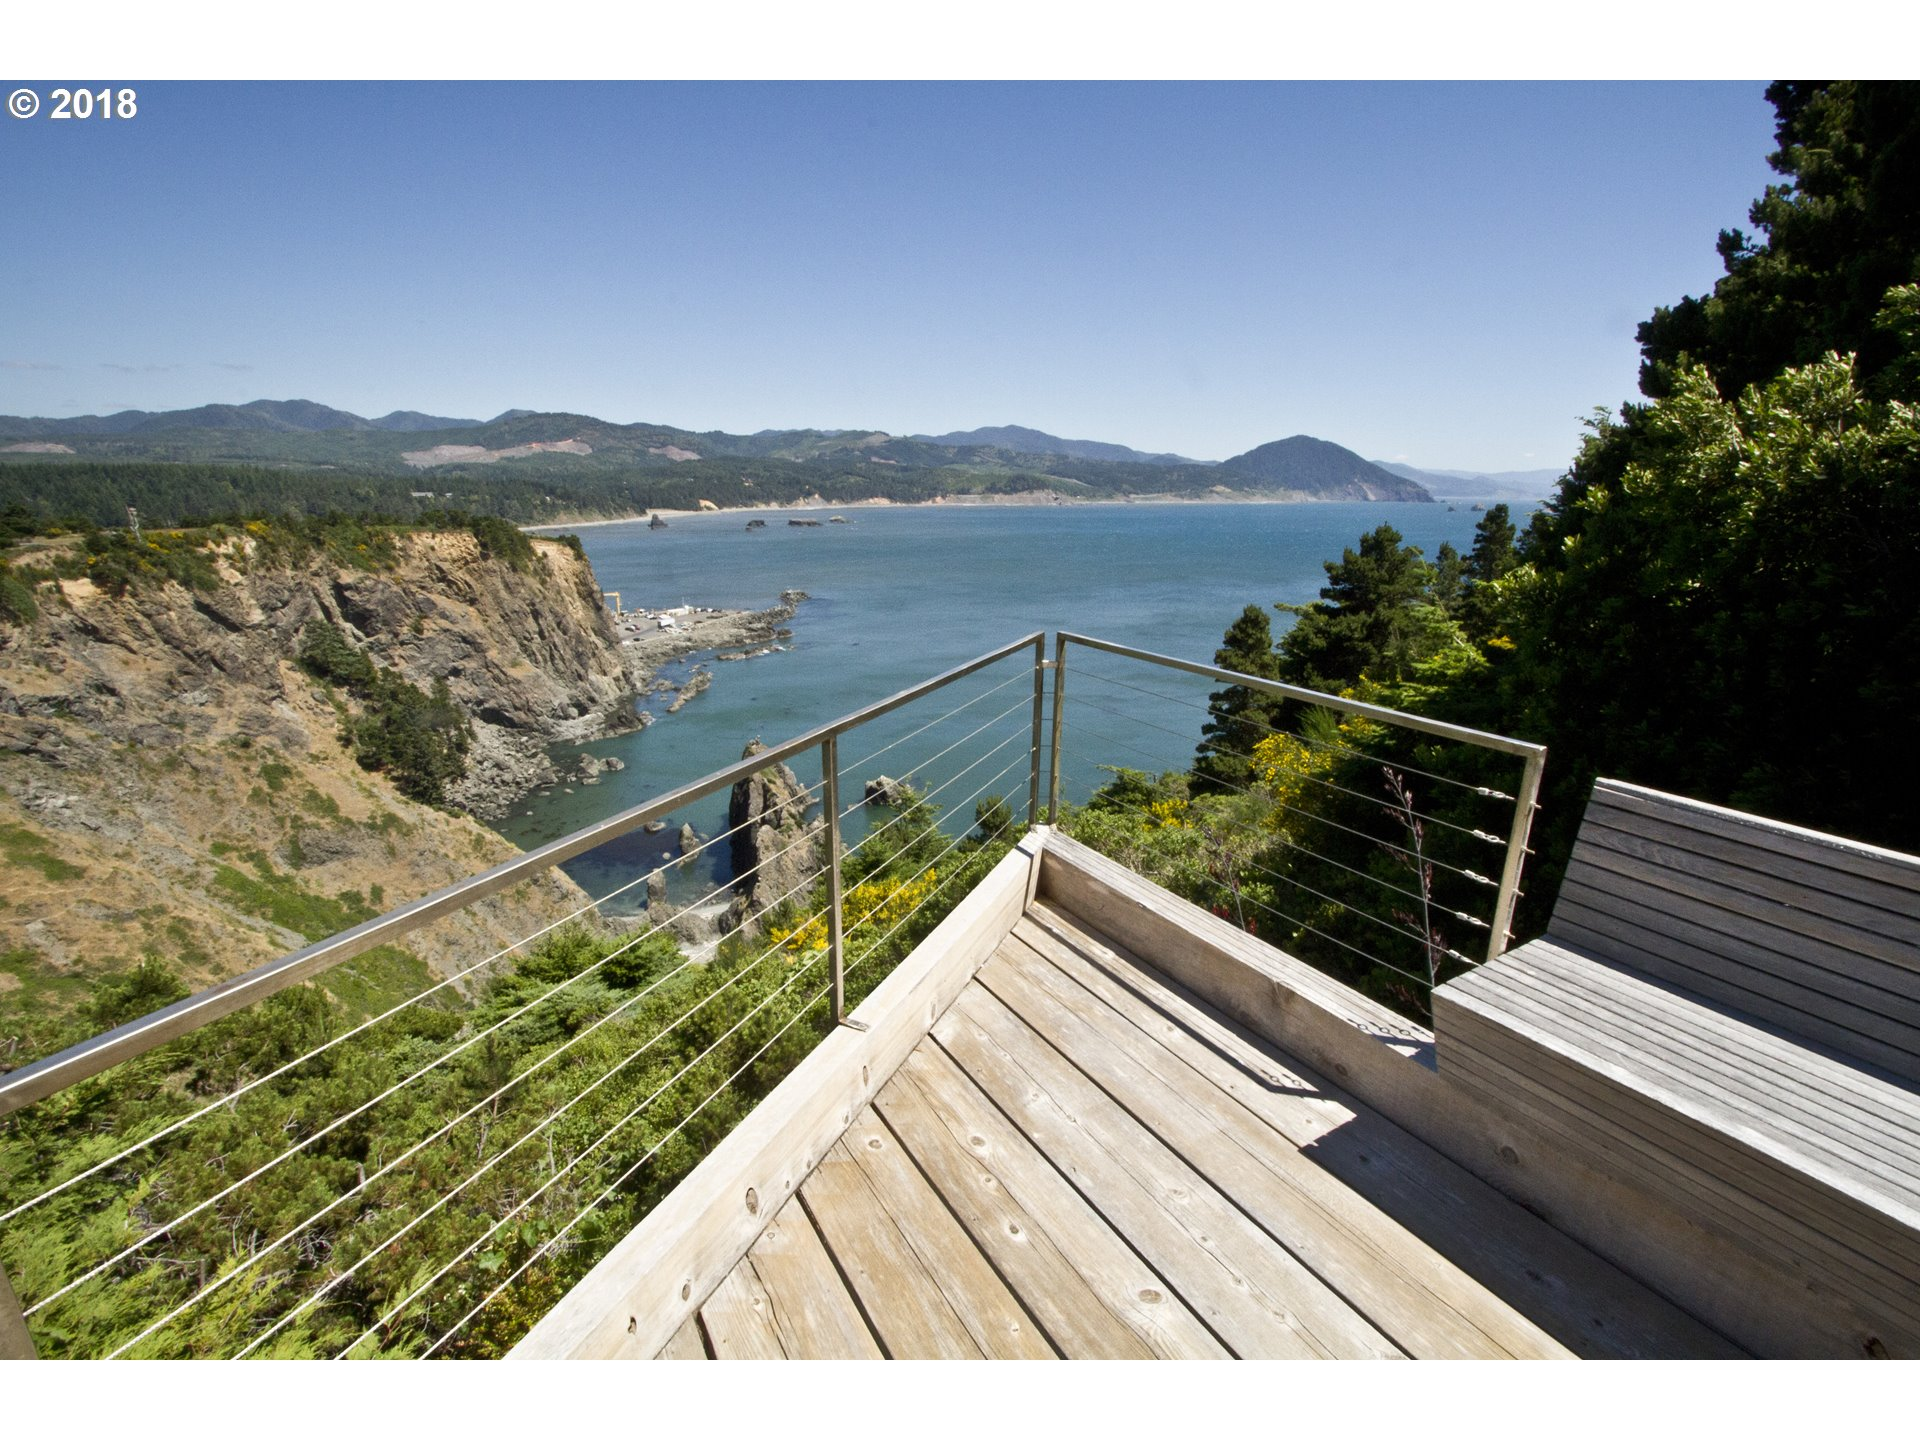 302 COAST GUARD HILL RD, PORT ORFORD, OR 97465  Photo 4